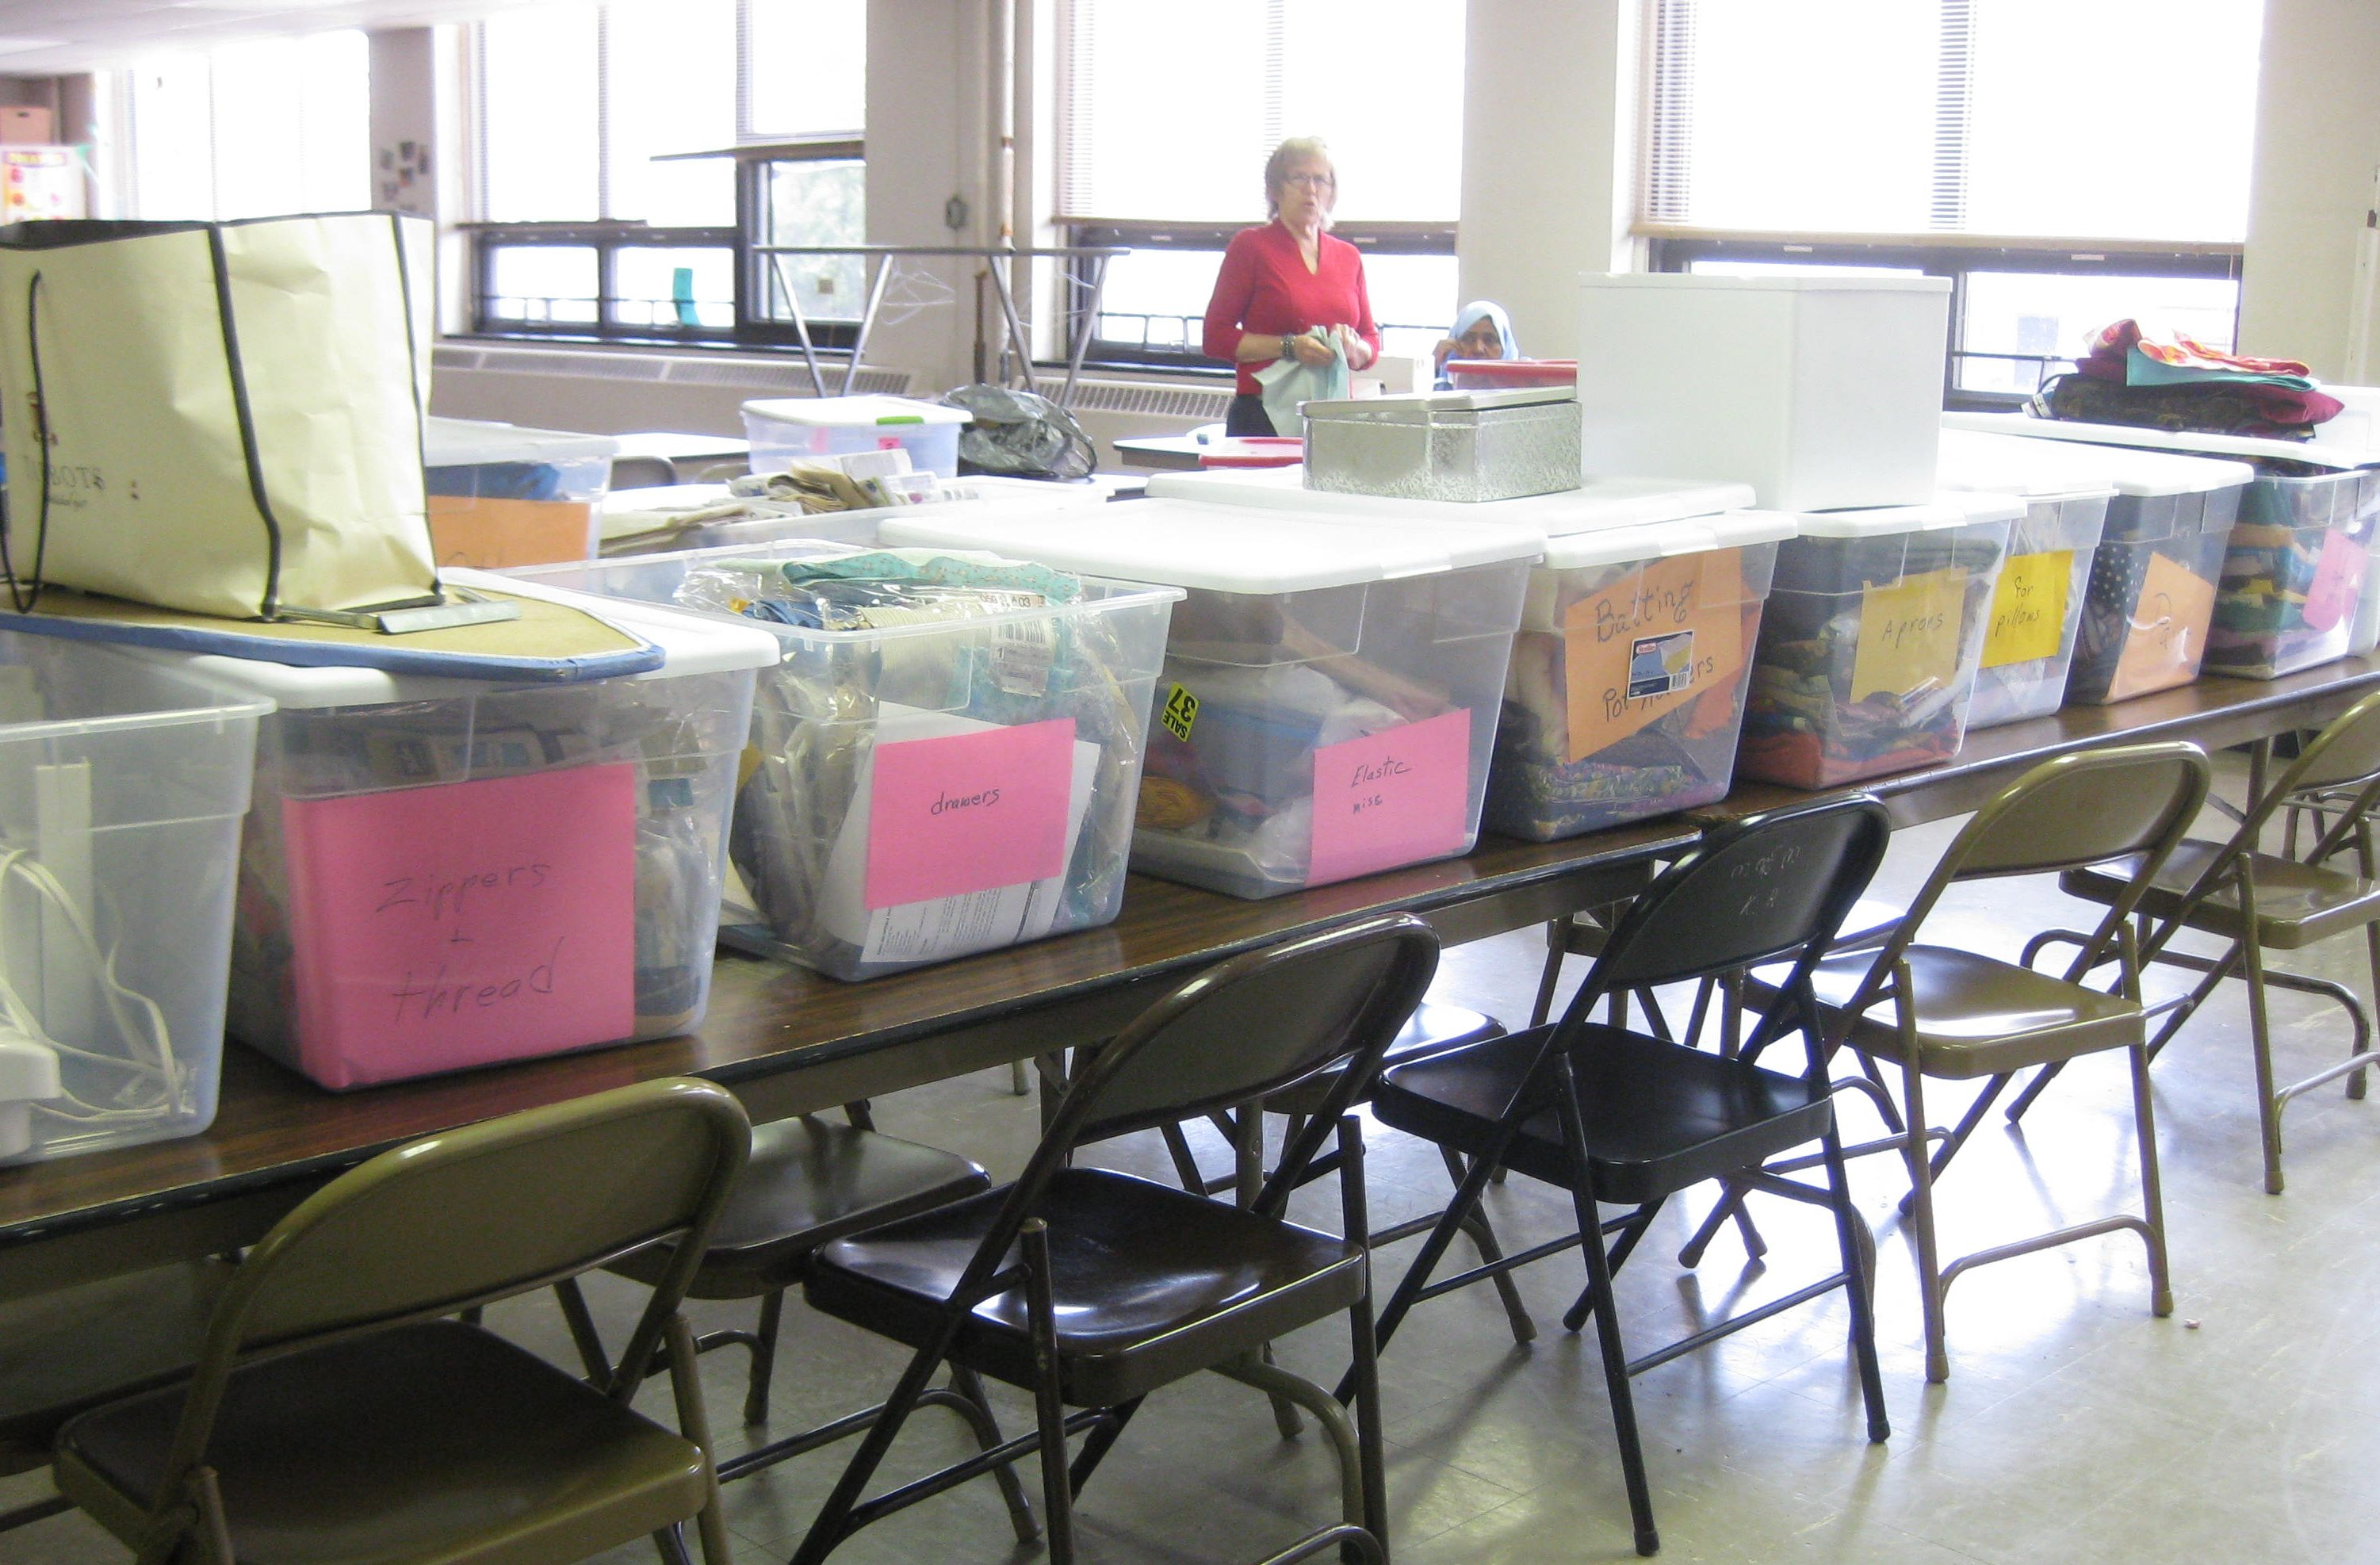 Sewing class - sorting donated supplies